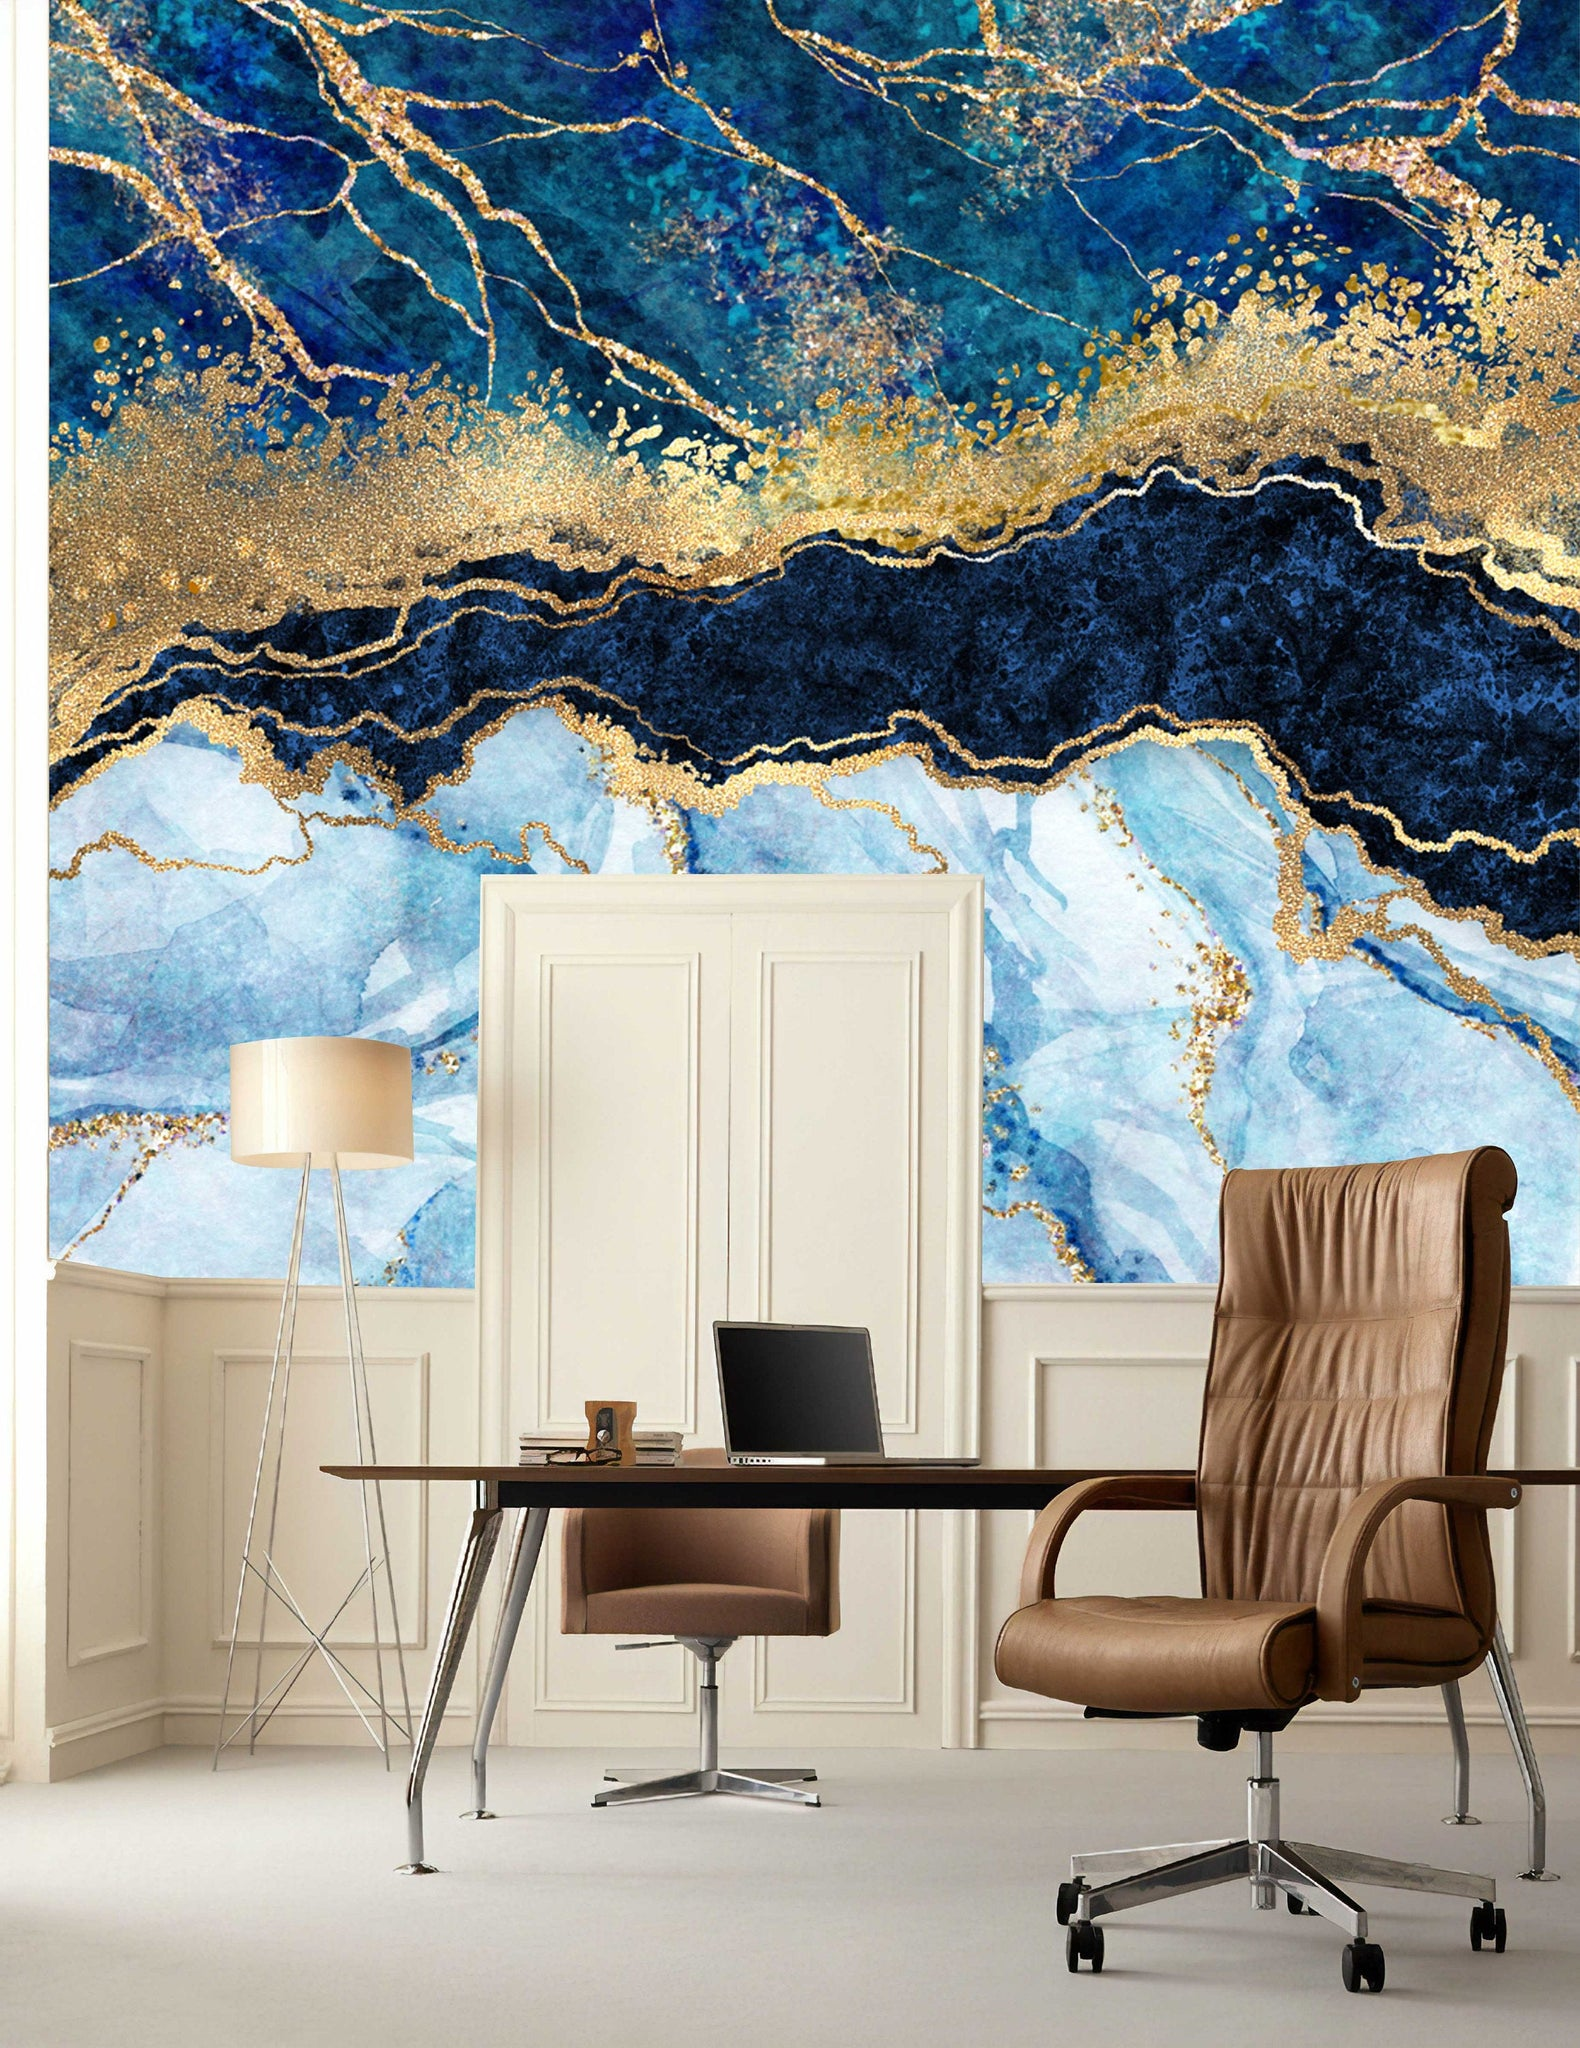 Marble Abstract Design Shades Of Blue Gold Yellow Wallpaper Wallpaew